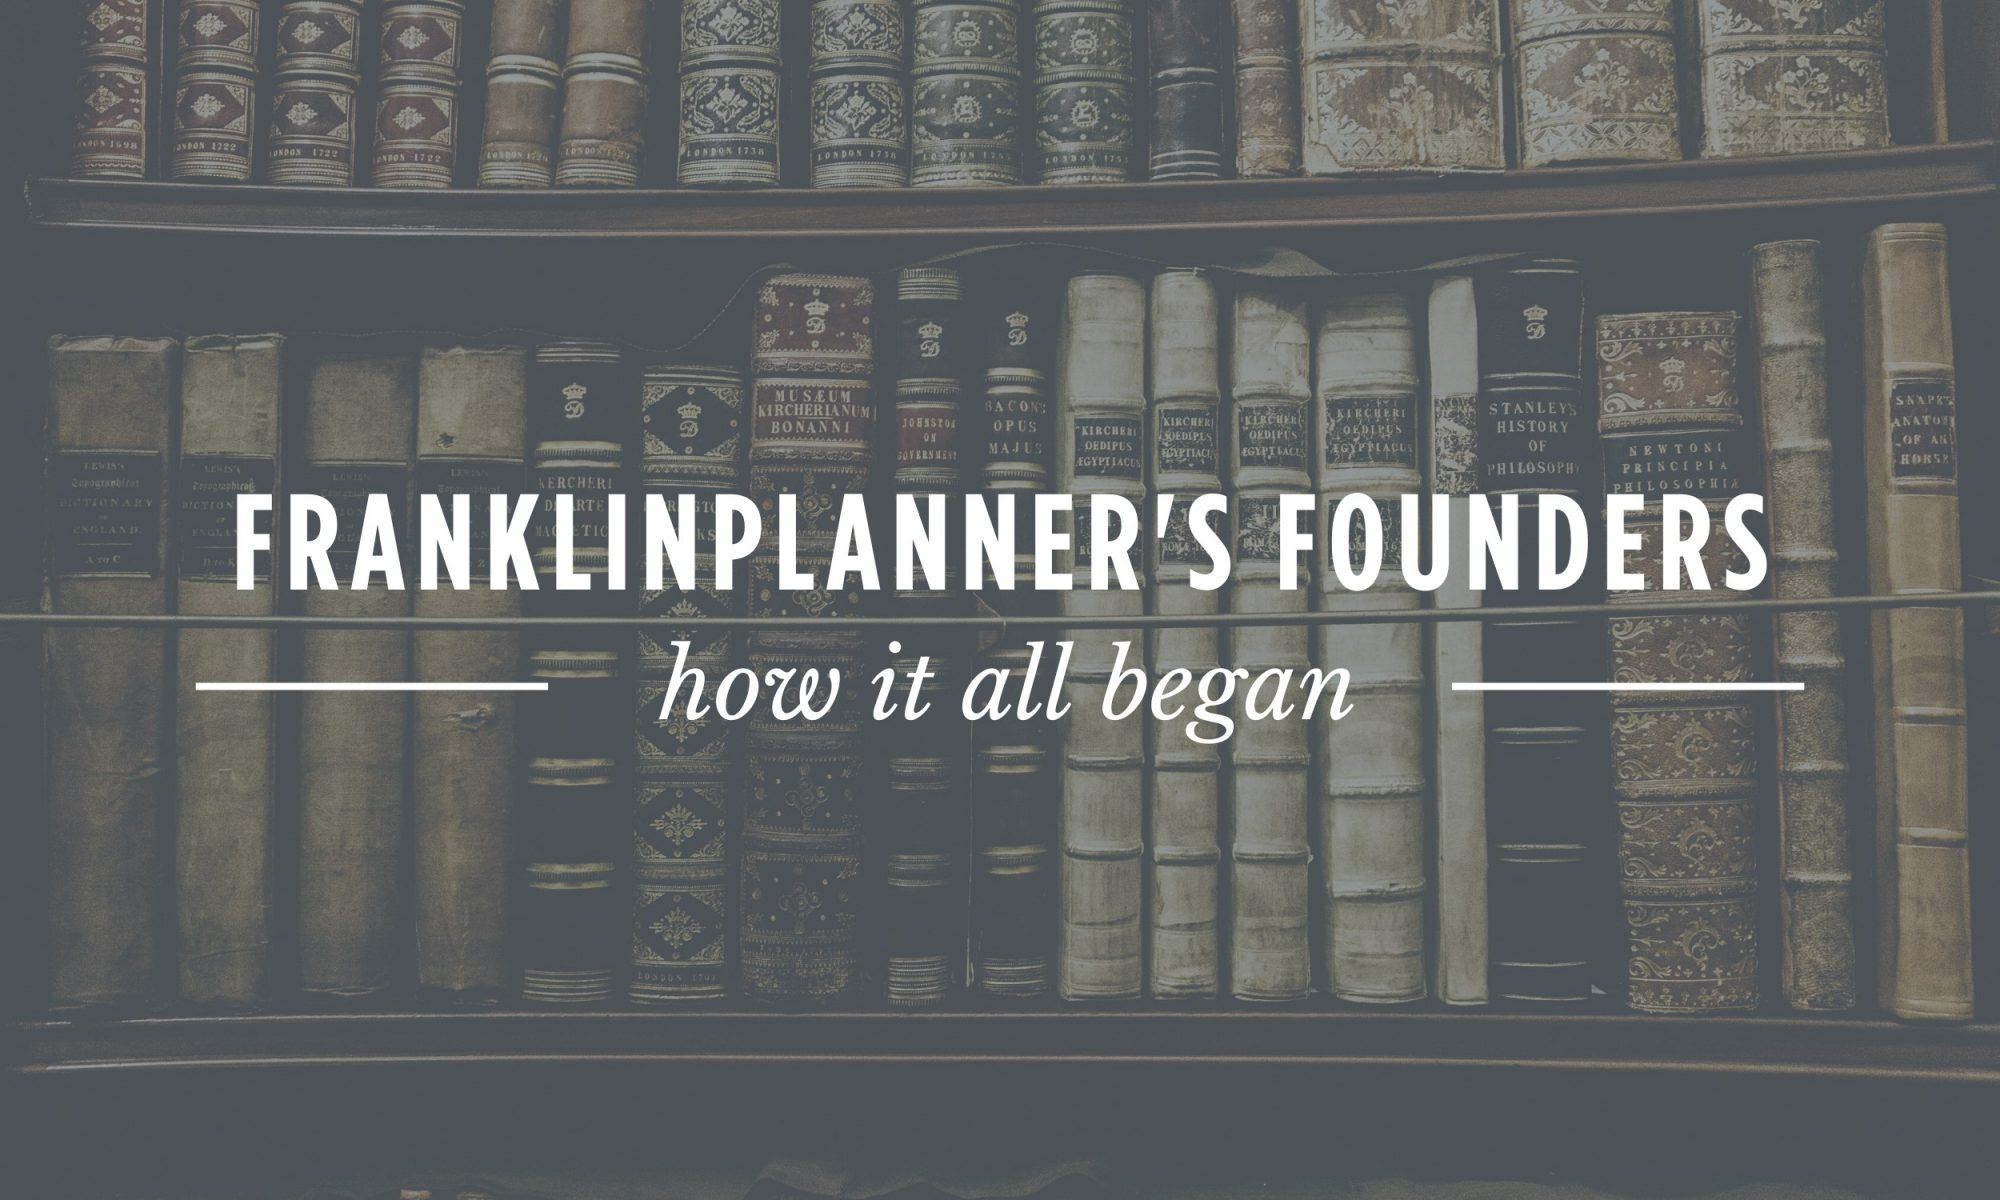 Franklinplanner's Founders. How it all began